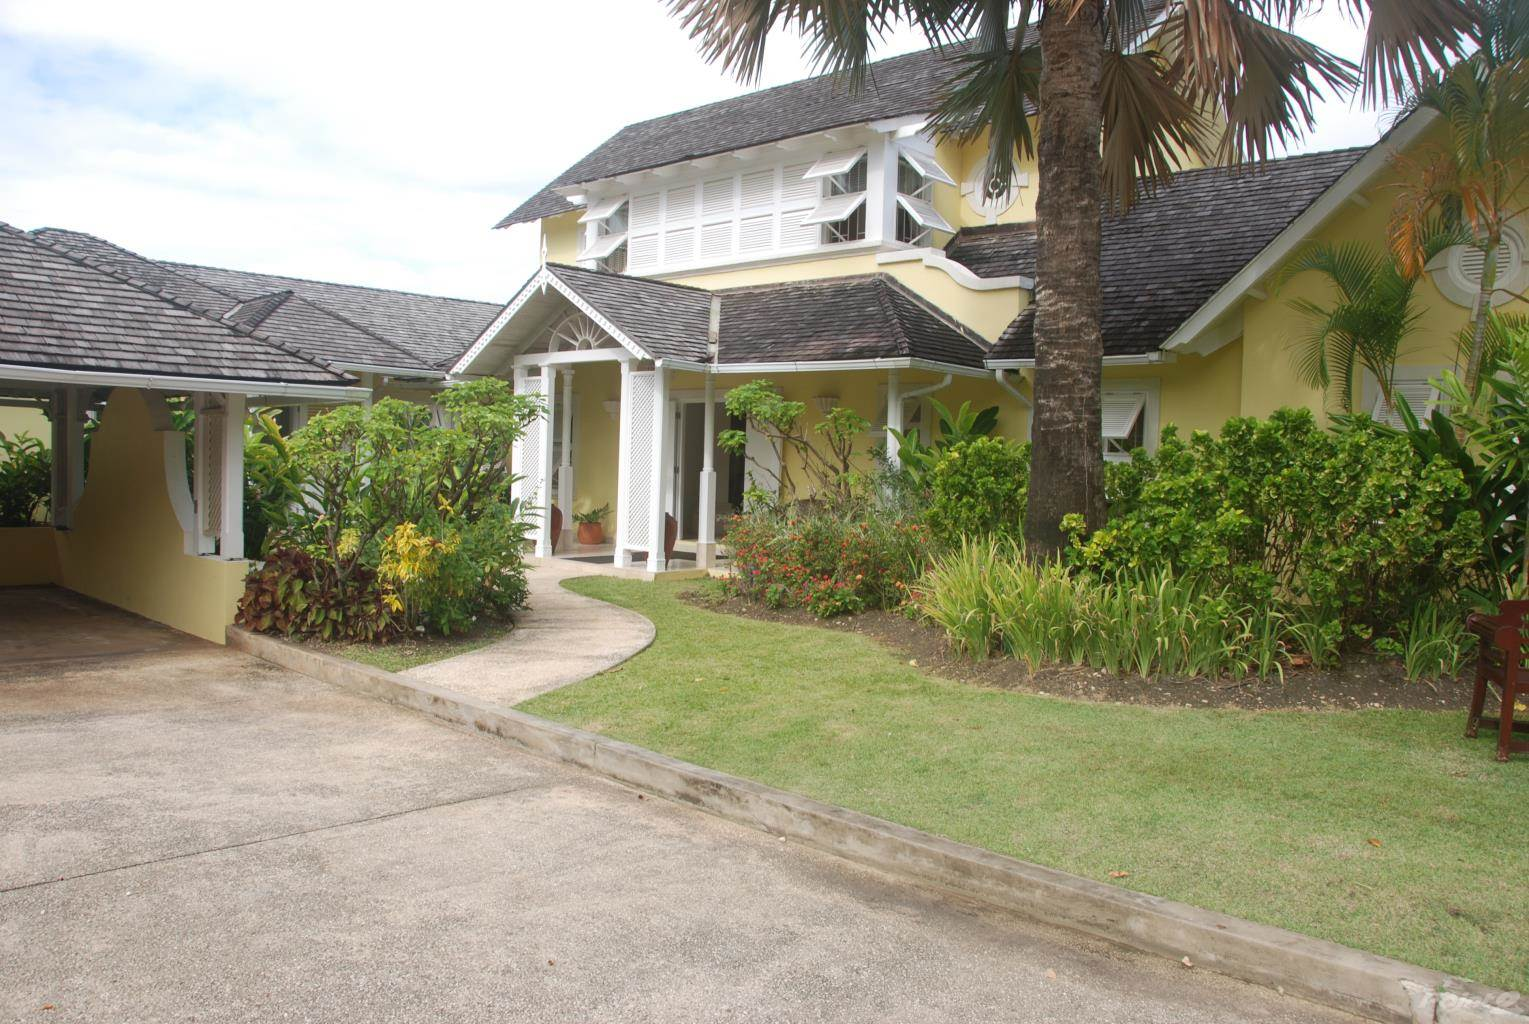 Residential For Rent in Star Gazer, St. James, St. James ,BB  , Barbados